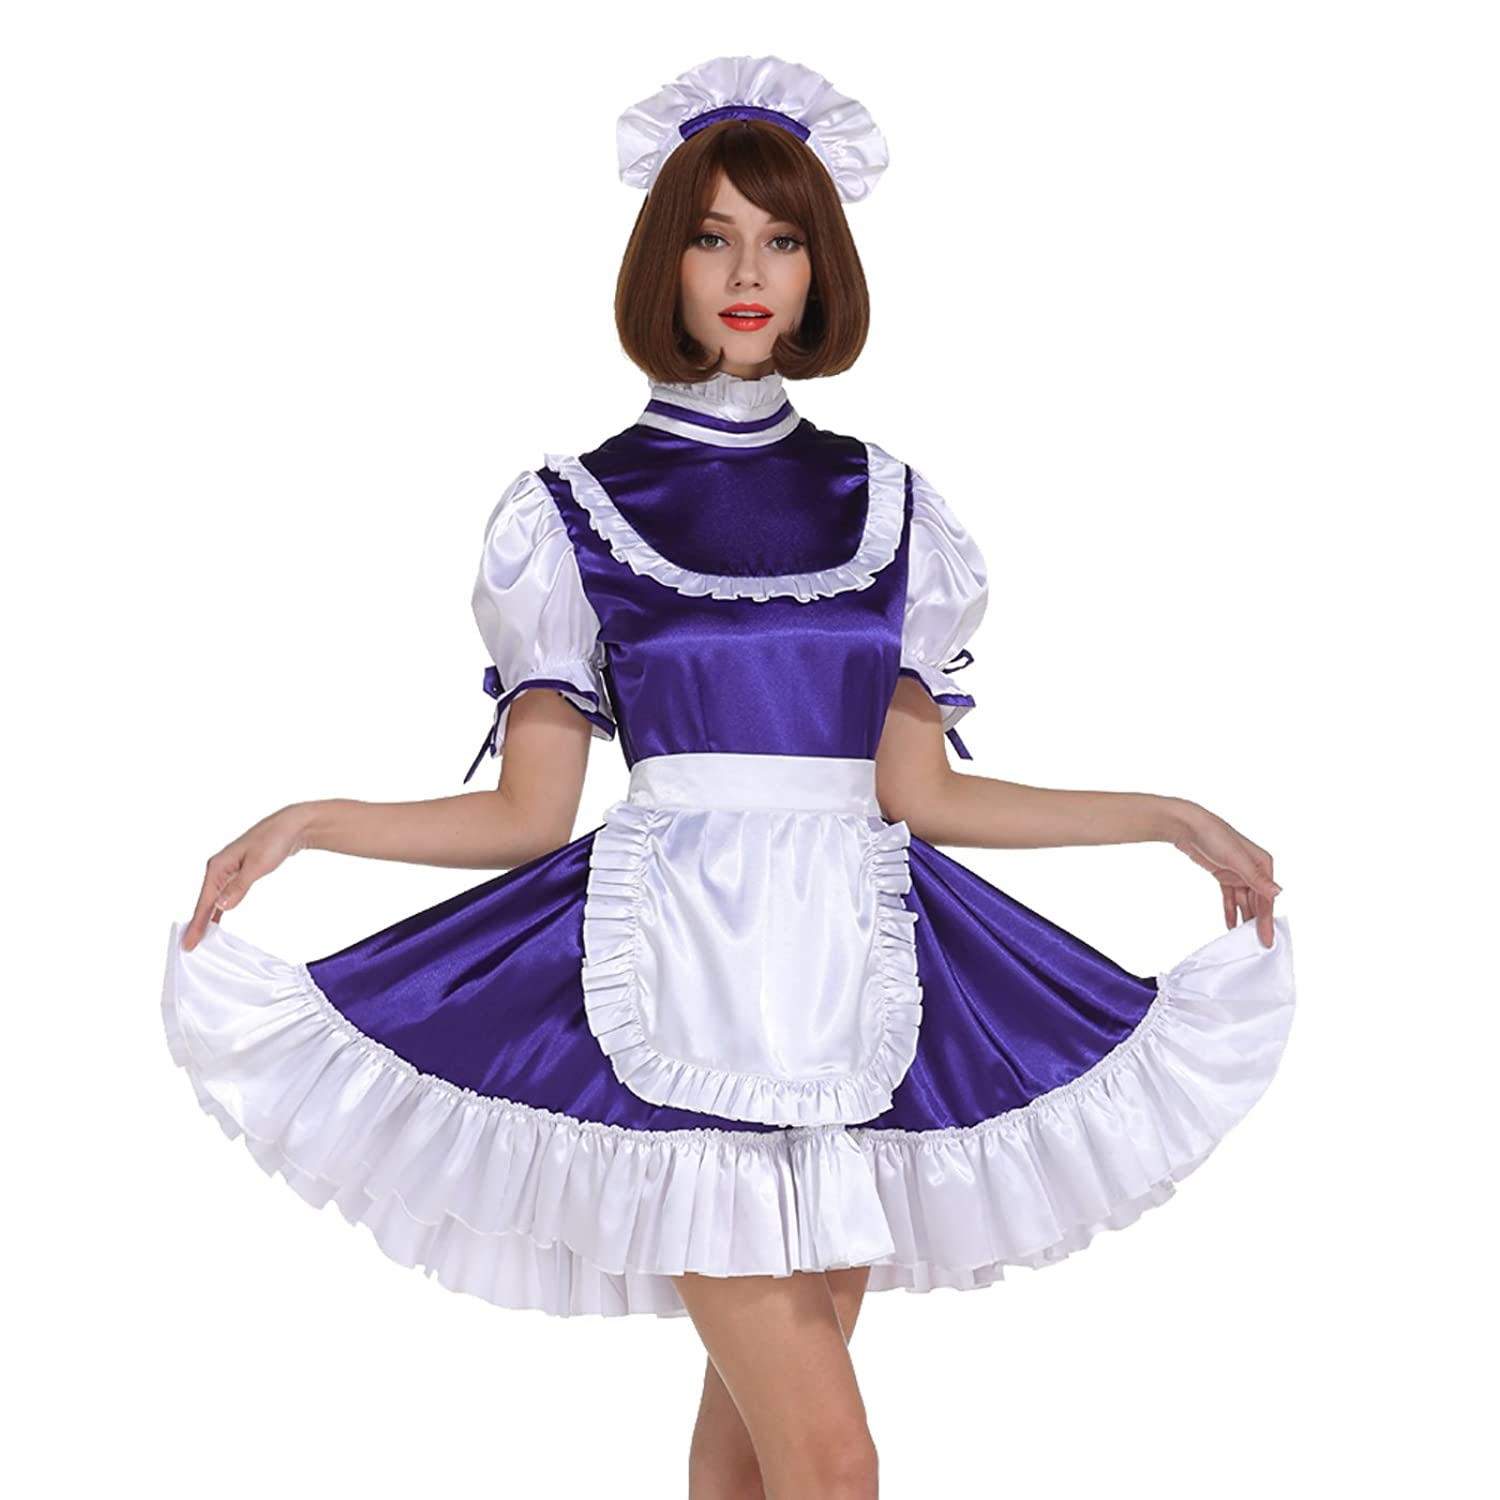 Sissy Dress for Girls